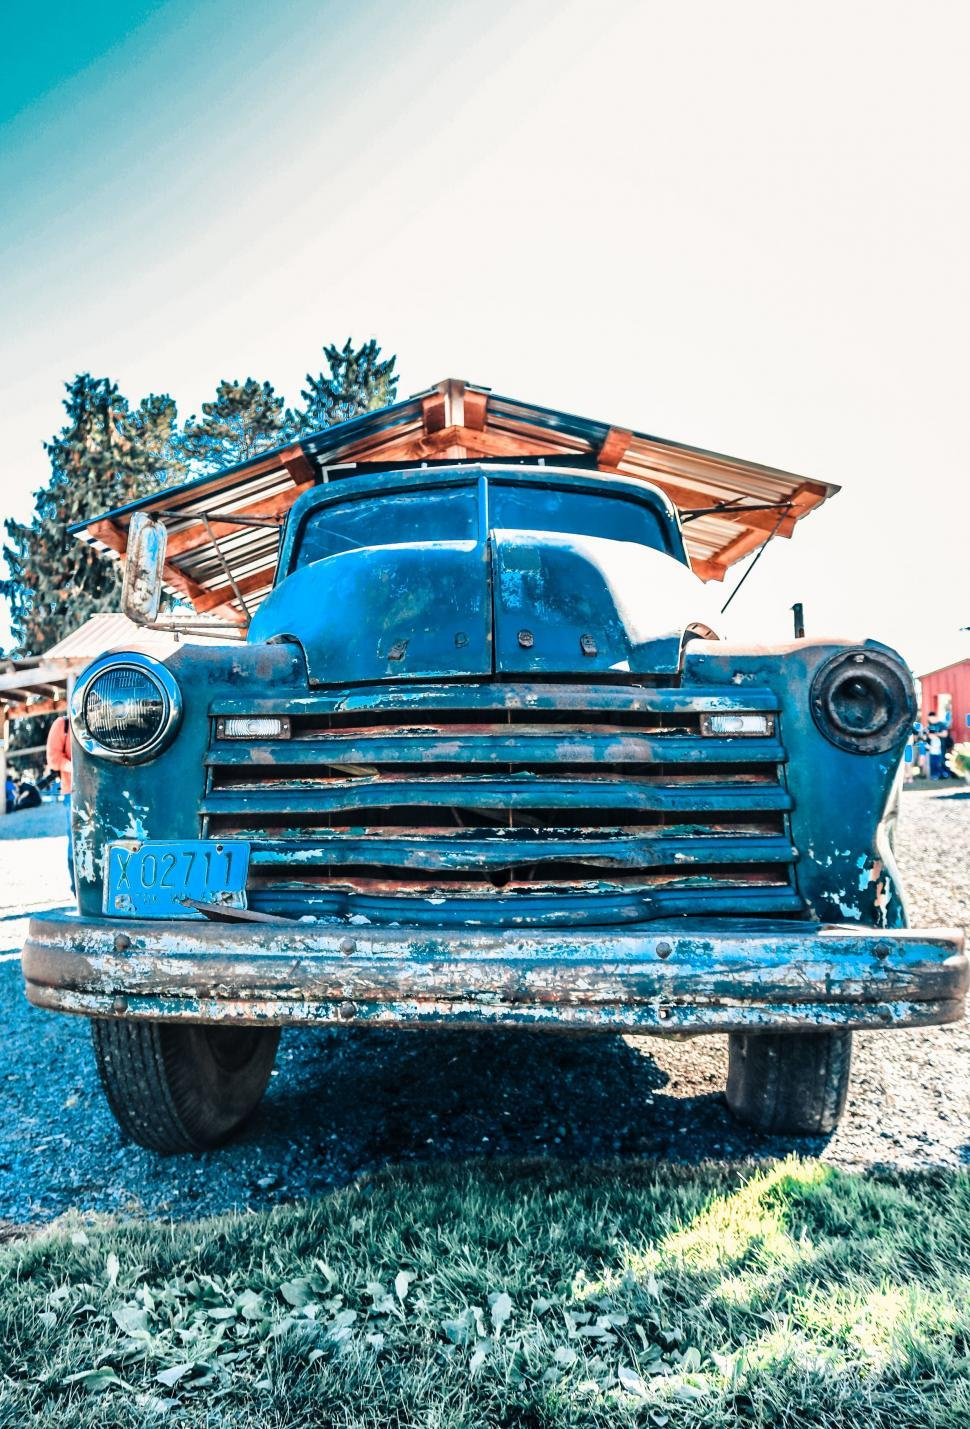 Download Free Stock Photo of Old Retro Car